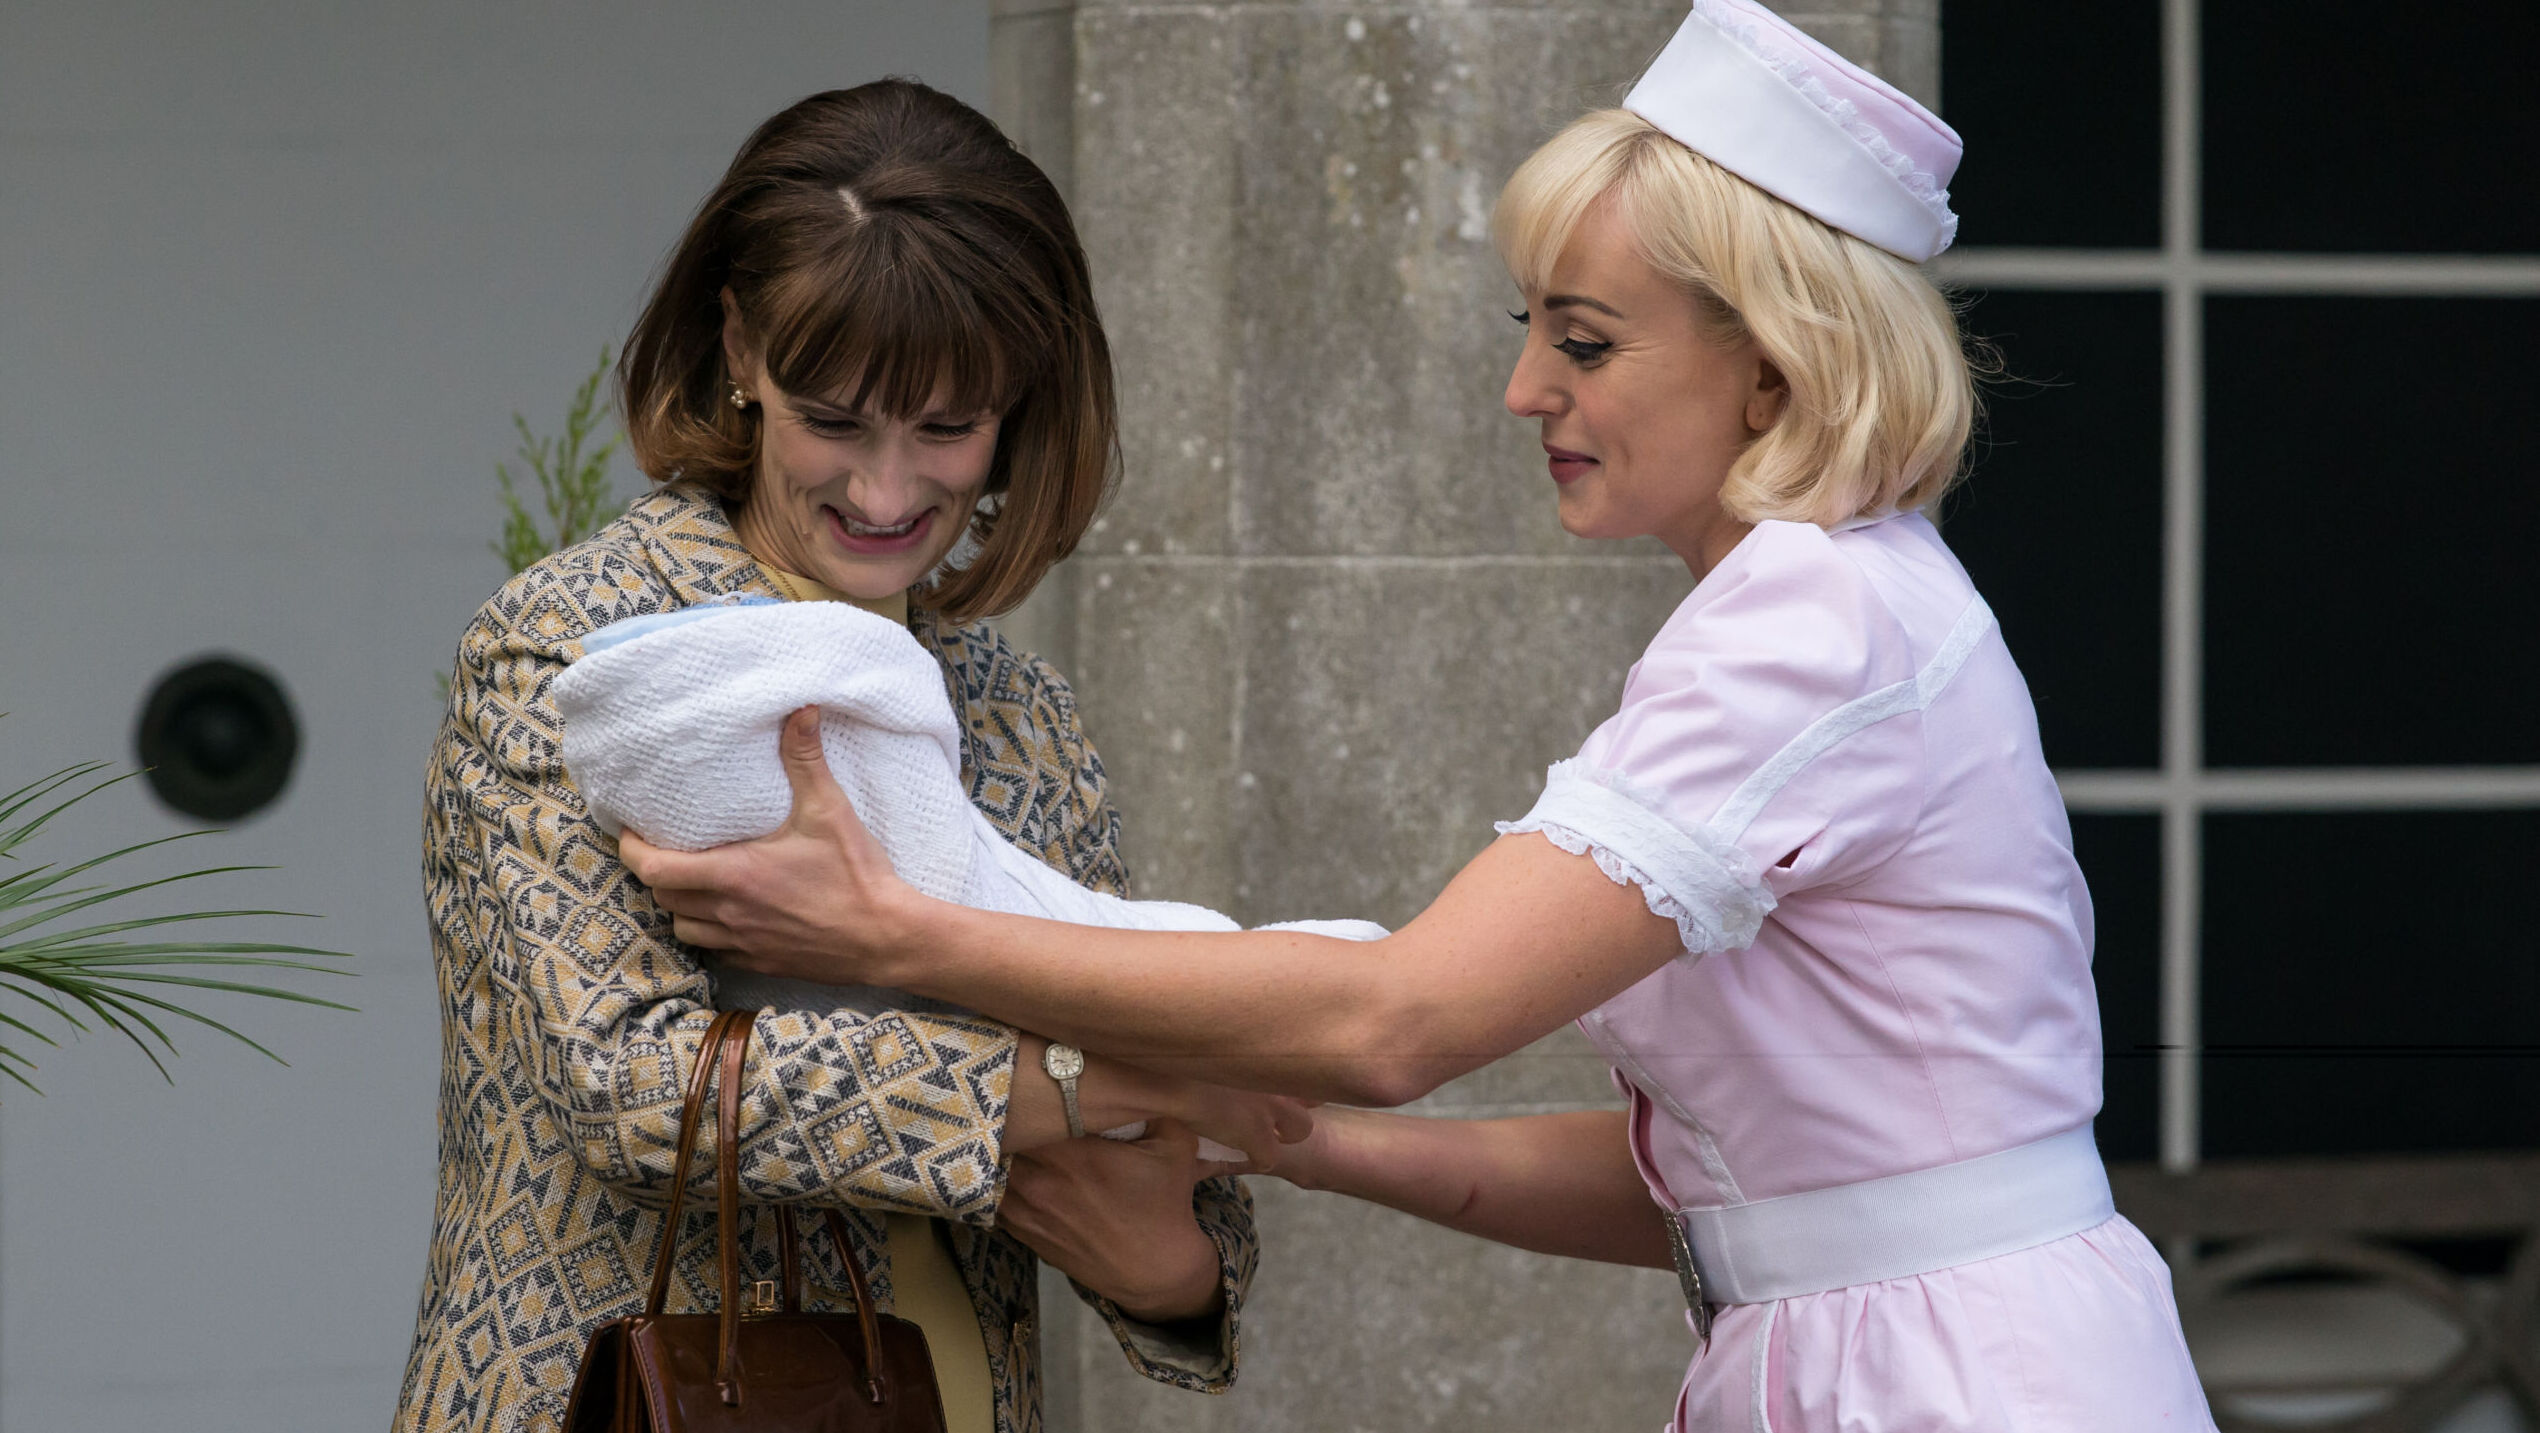 A woman with long dark hair accepts a baby wrapped in white fabric into her arms from a blond nurse in pink uniform.